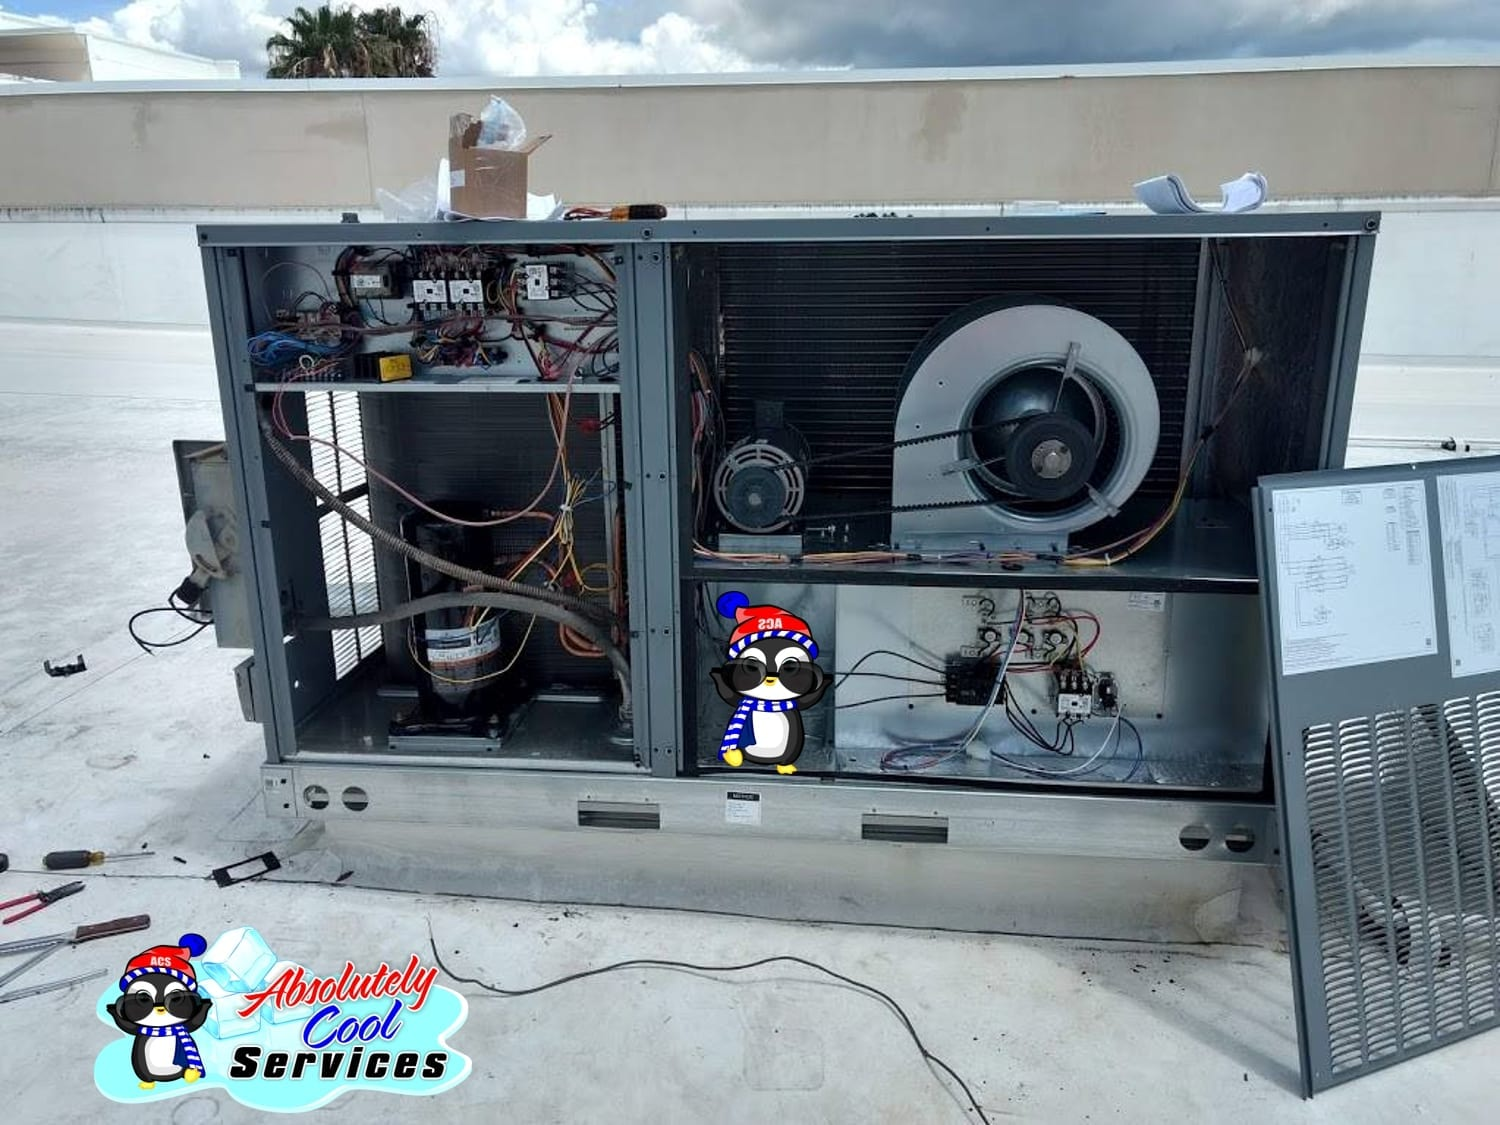 Roof Air Conditioning | HVAC Maintenance Service near Palm Beach Gardens